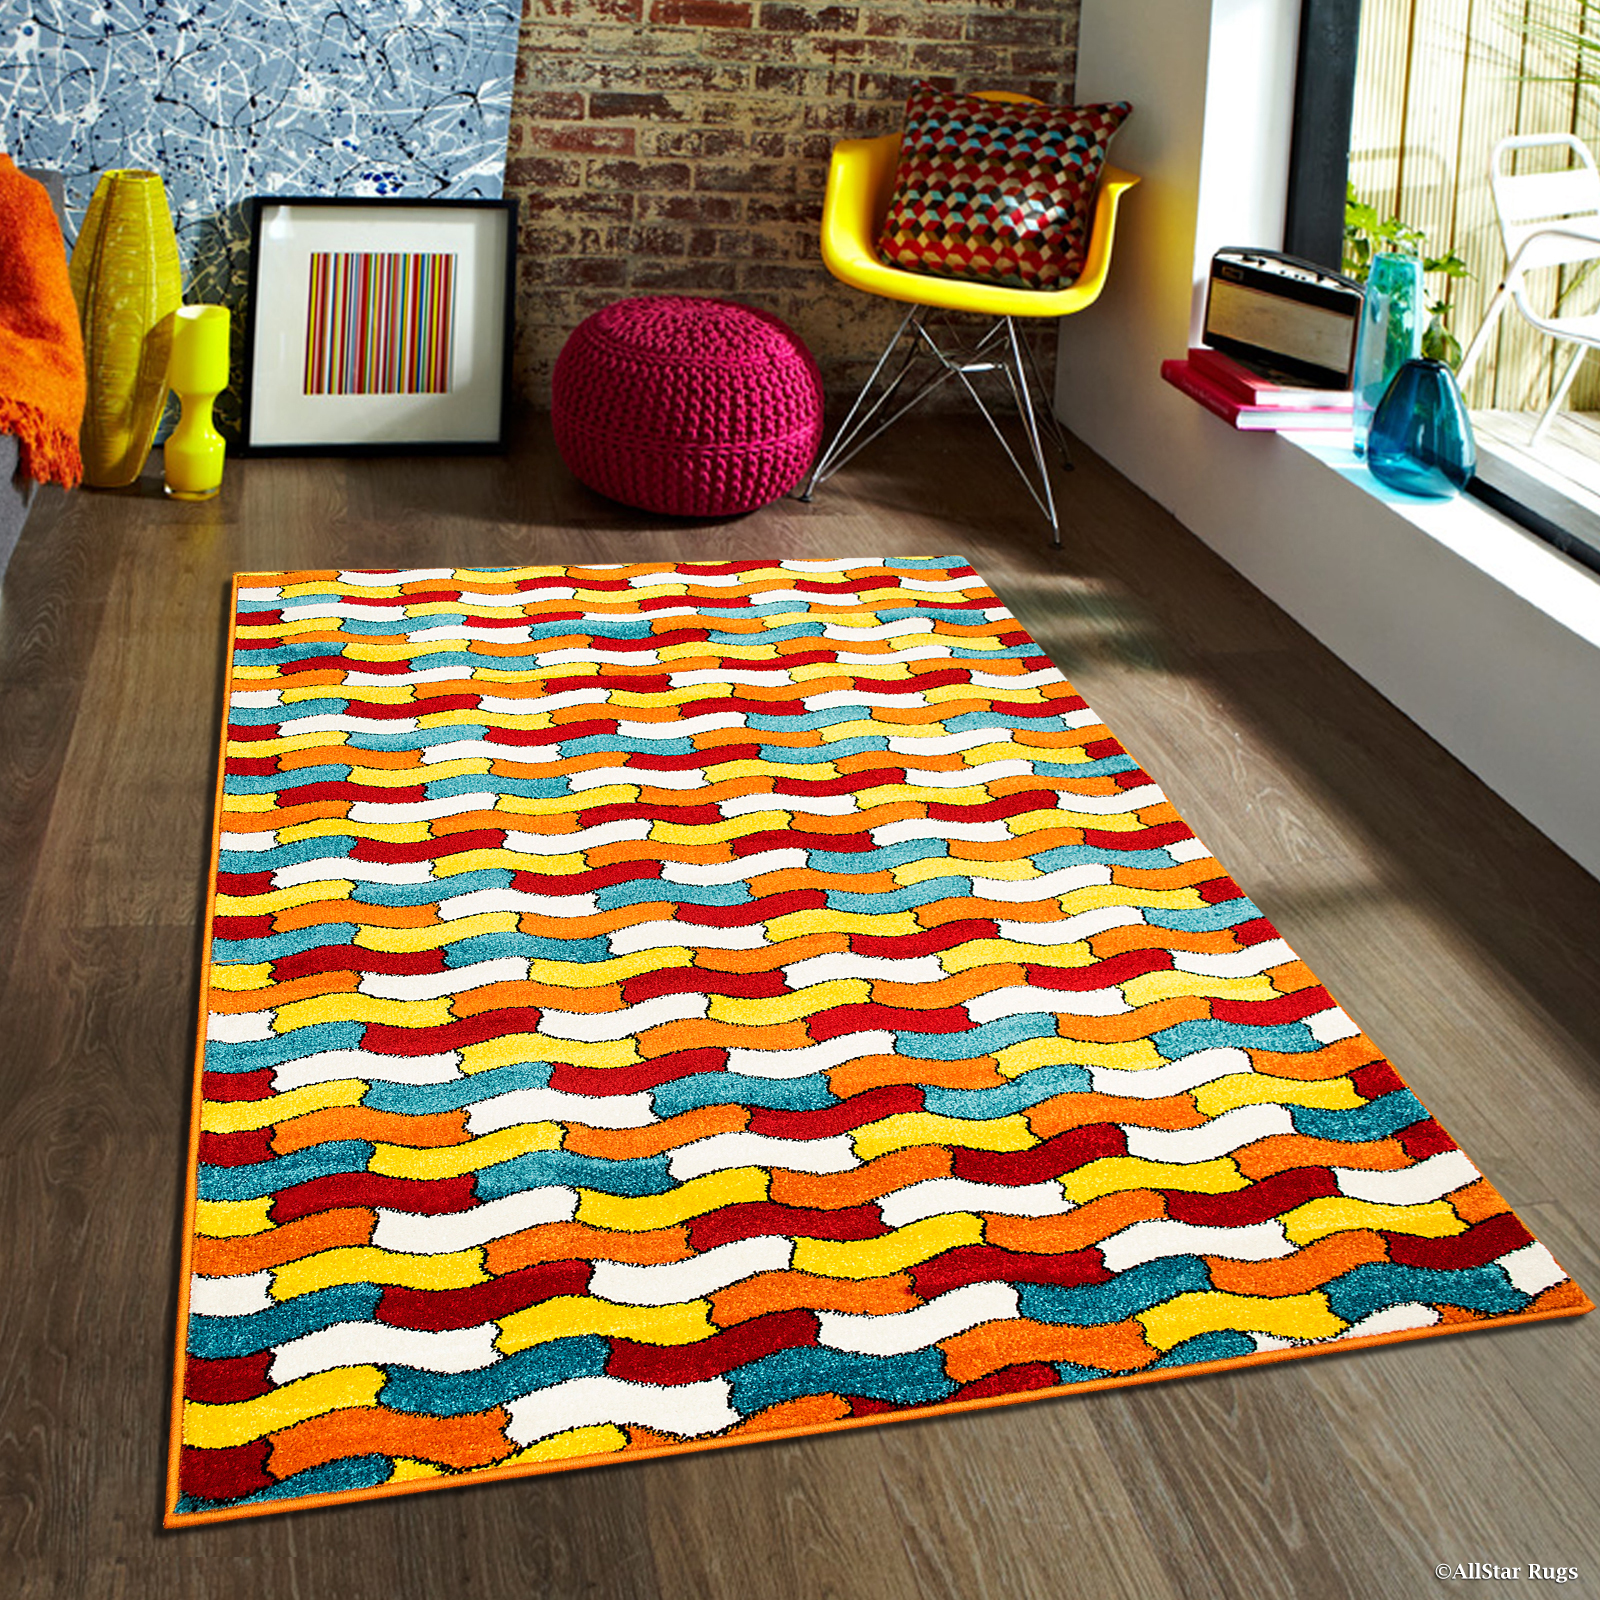 "Allstar Woven High Quality Colorfun. Burst of Colors. Contemporary. Modern. Geometric. Area Rug (7' 10"" x 10')"